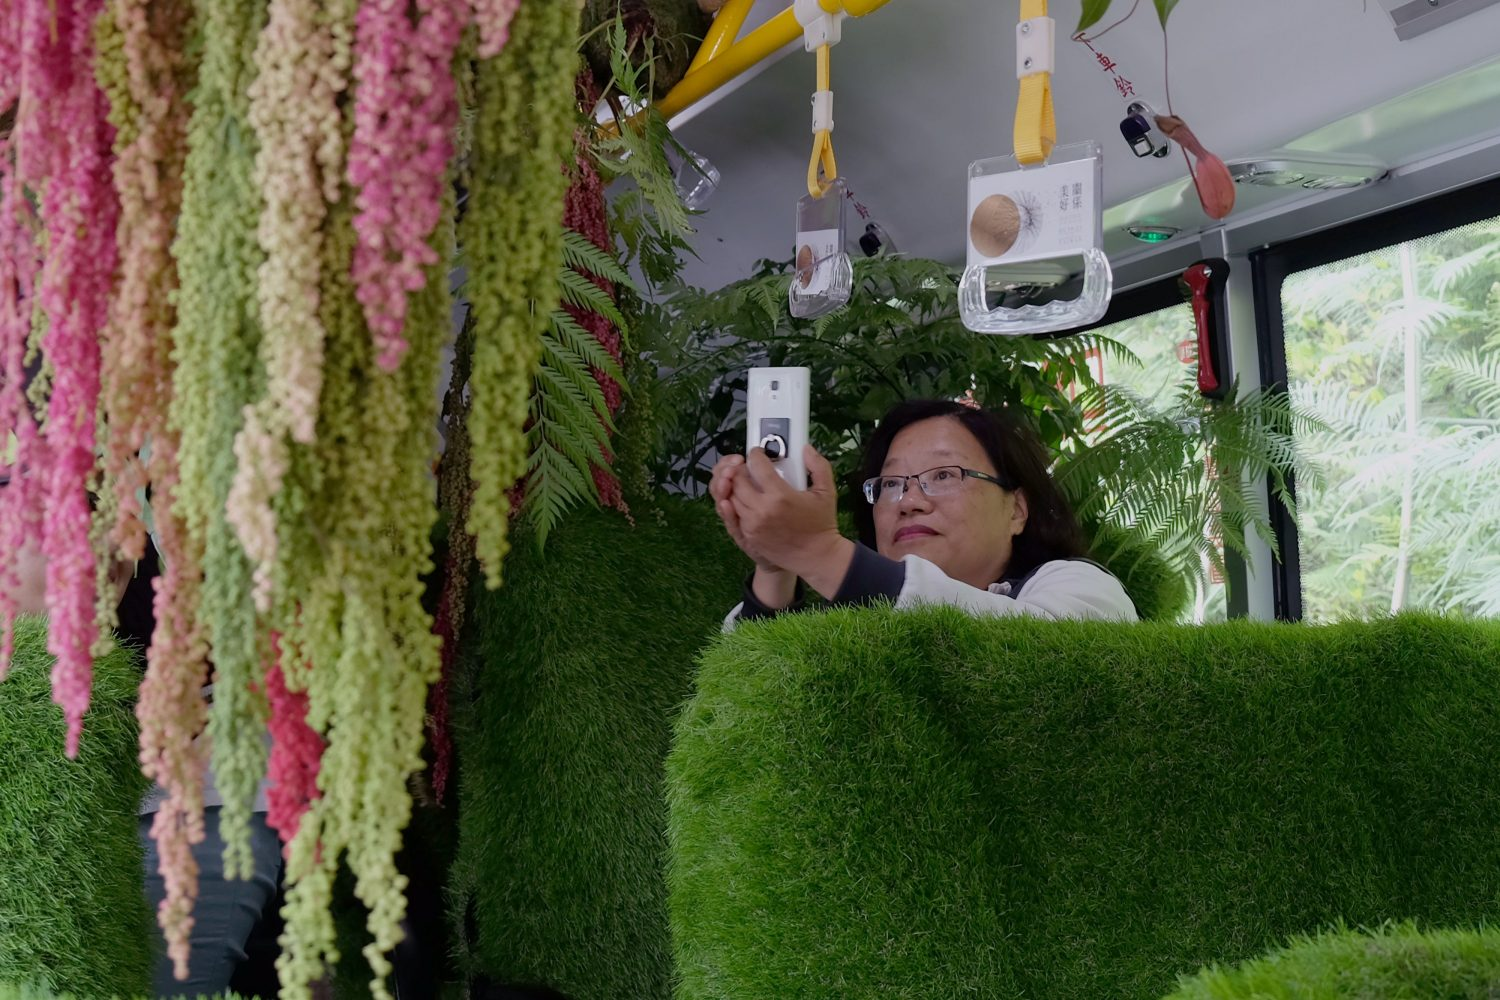 """Inside the """"forest bus"""" in Taipei. Image: Sam Yeh/AFP/Getty Images"""